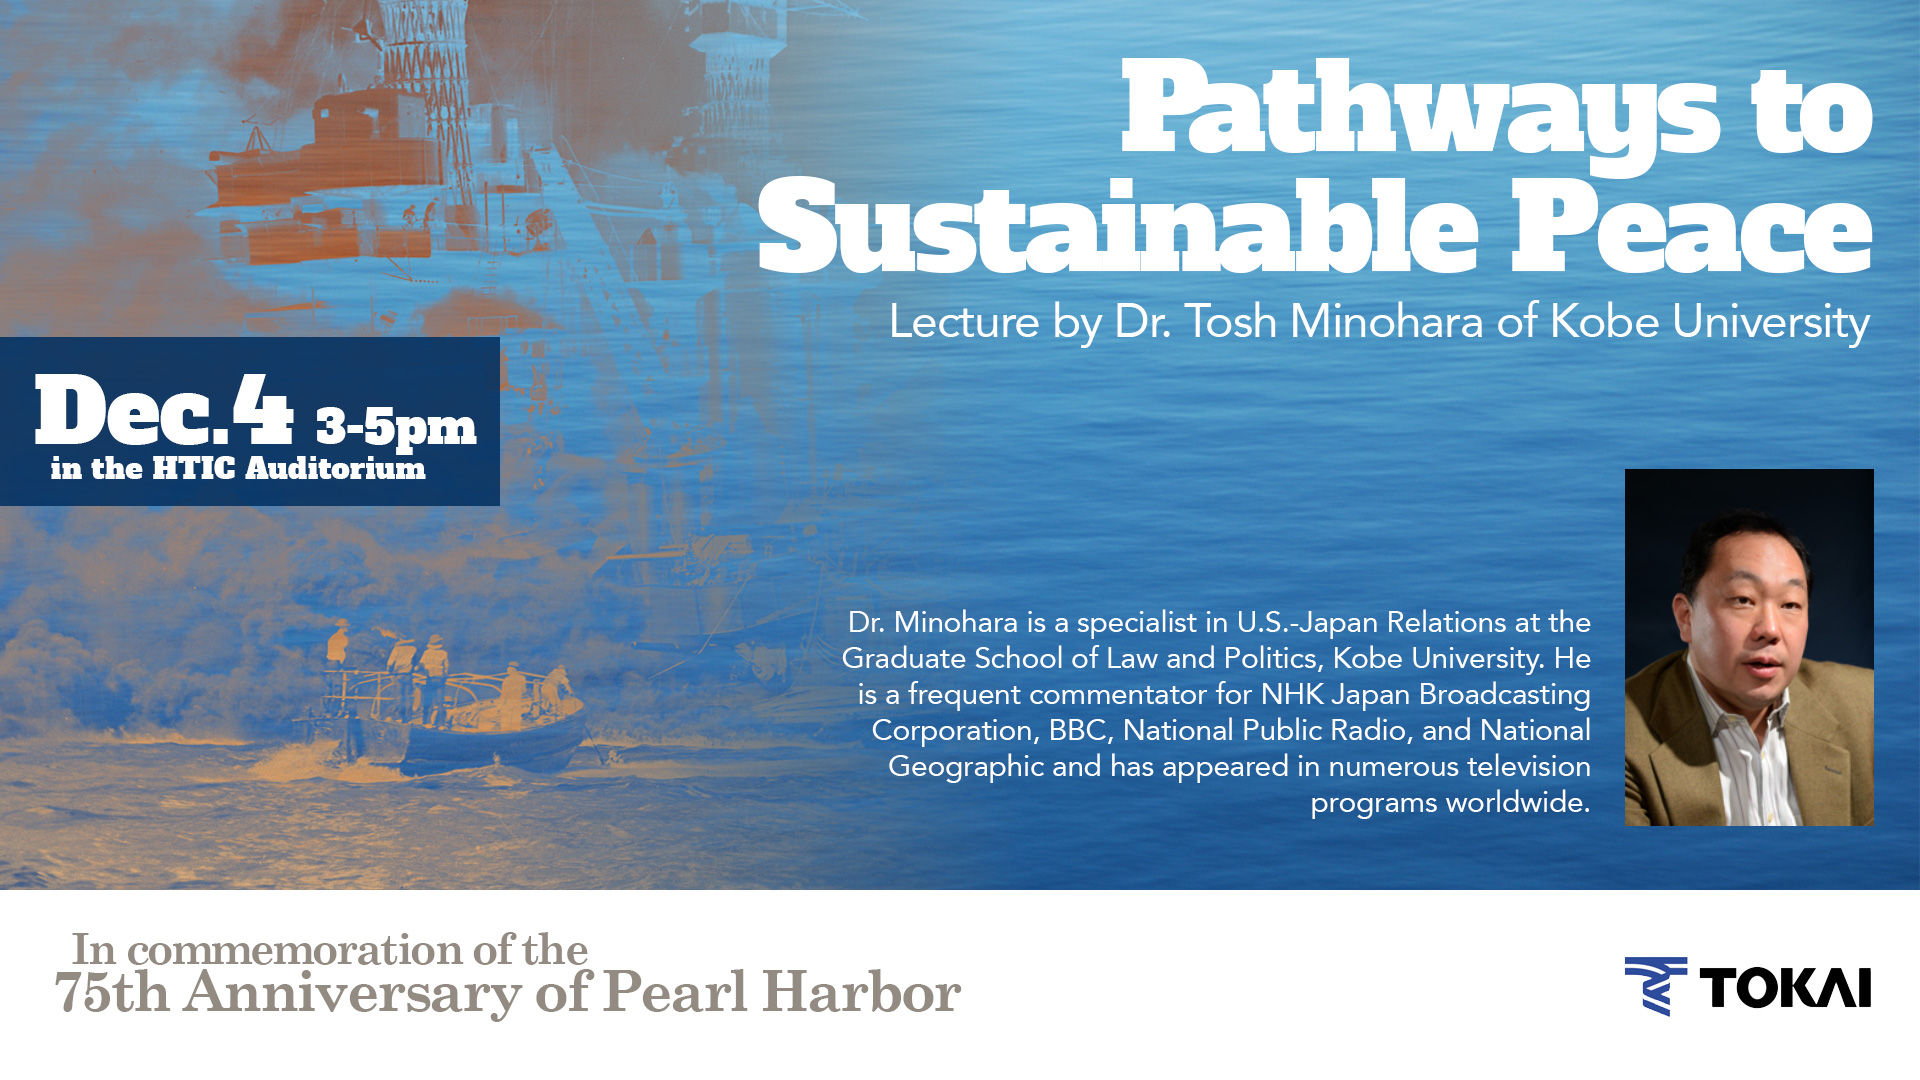 Pathways to Sustainable Peace Symposium, Dec. 4